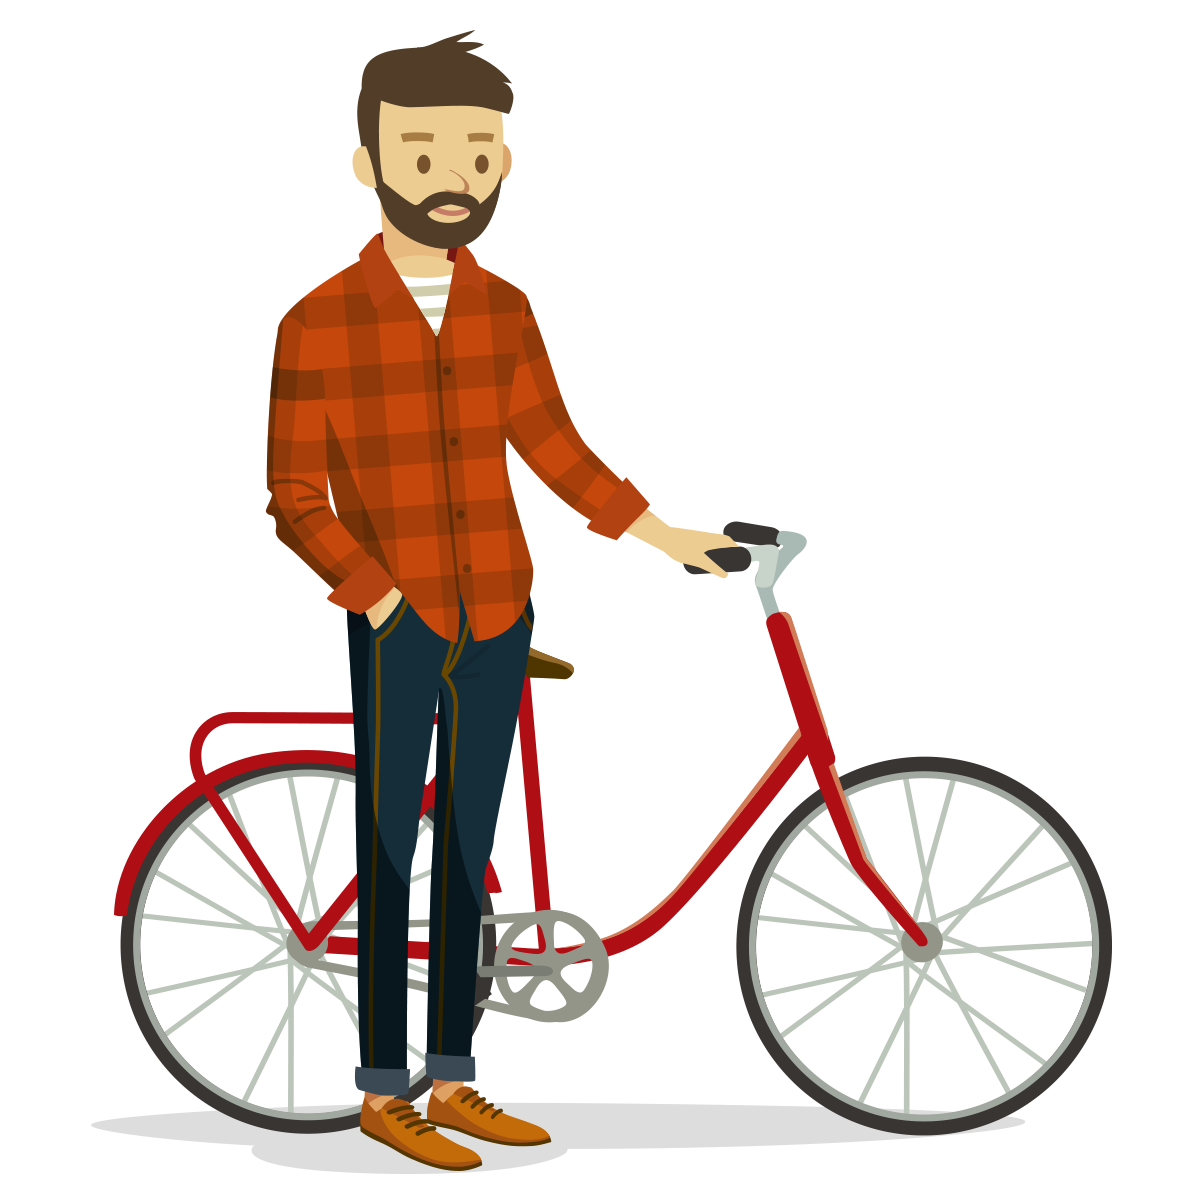 Cycling clipart go ahead. About us mg designer